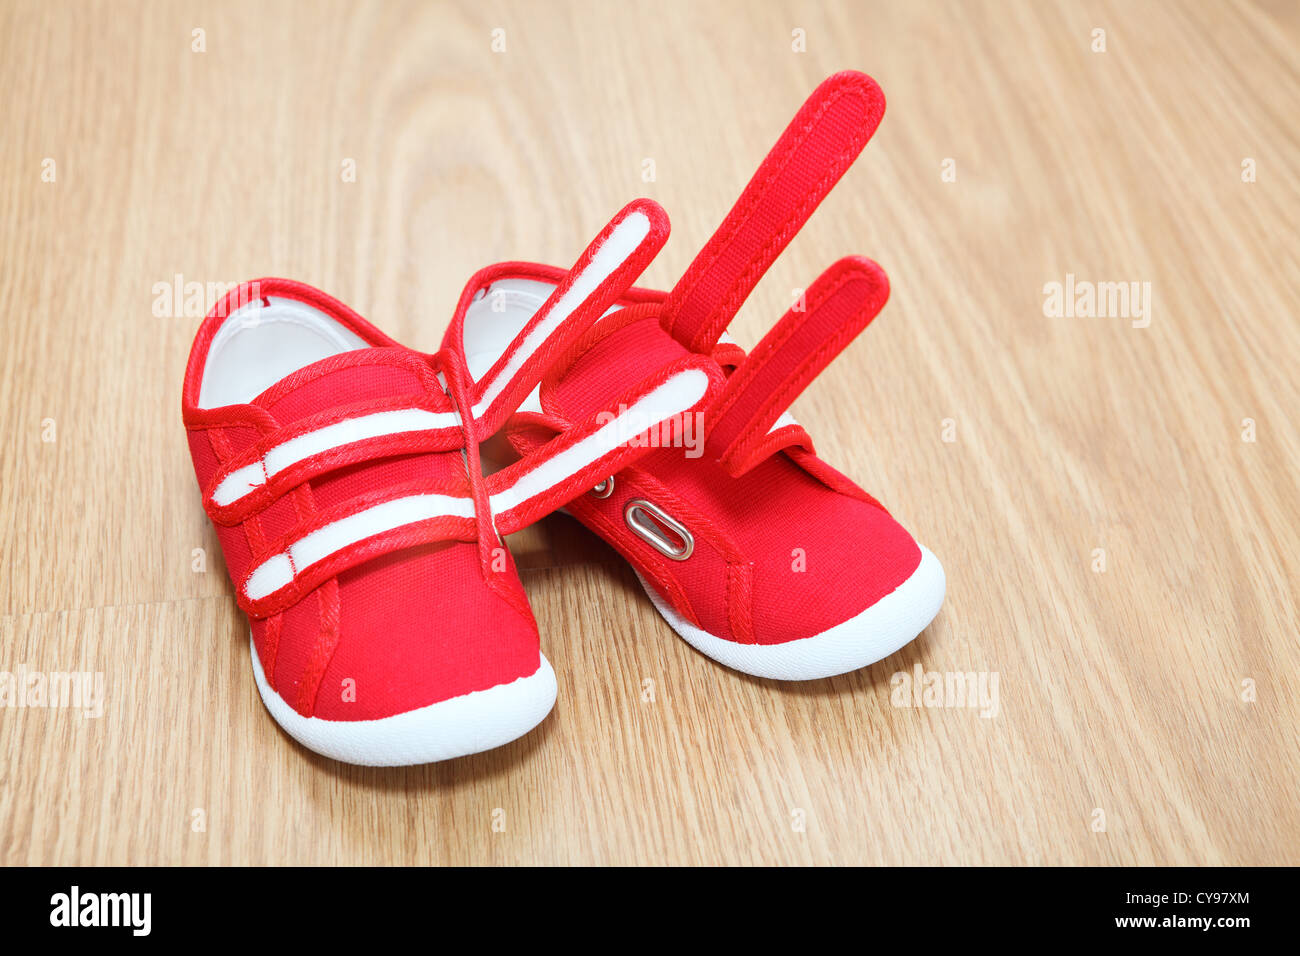 Red children shoes standing on the floor - Stock Image